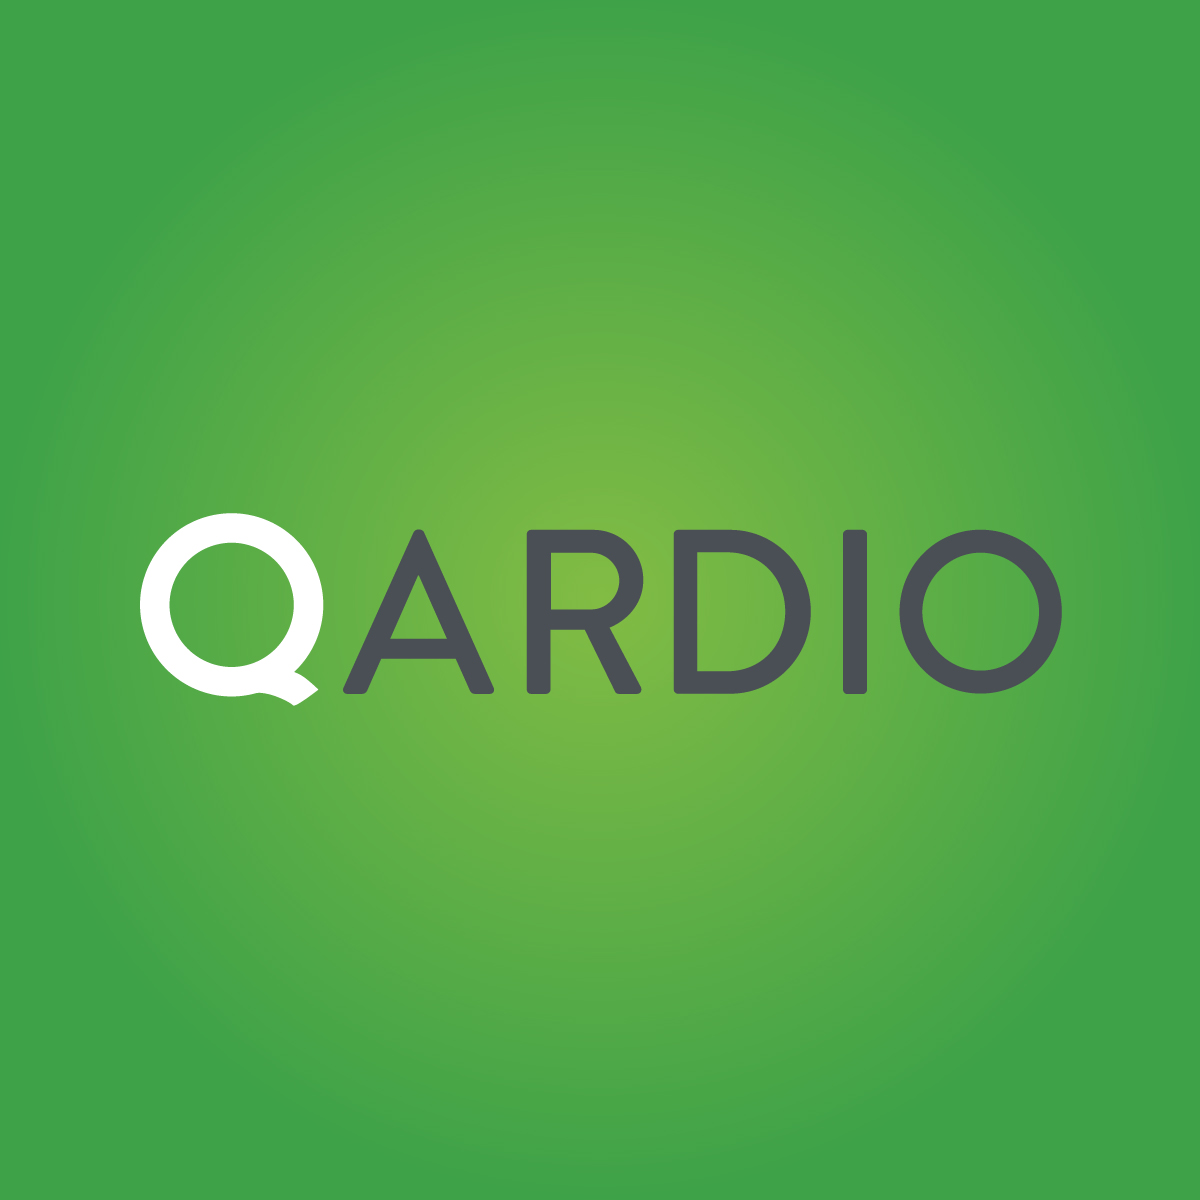 QARDIO   is a San Francisco headquartered company with the aim of being the leading global player covering all key heart health biometrics and delivering a smart health platform integrating patients, doctors and providers.